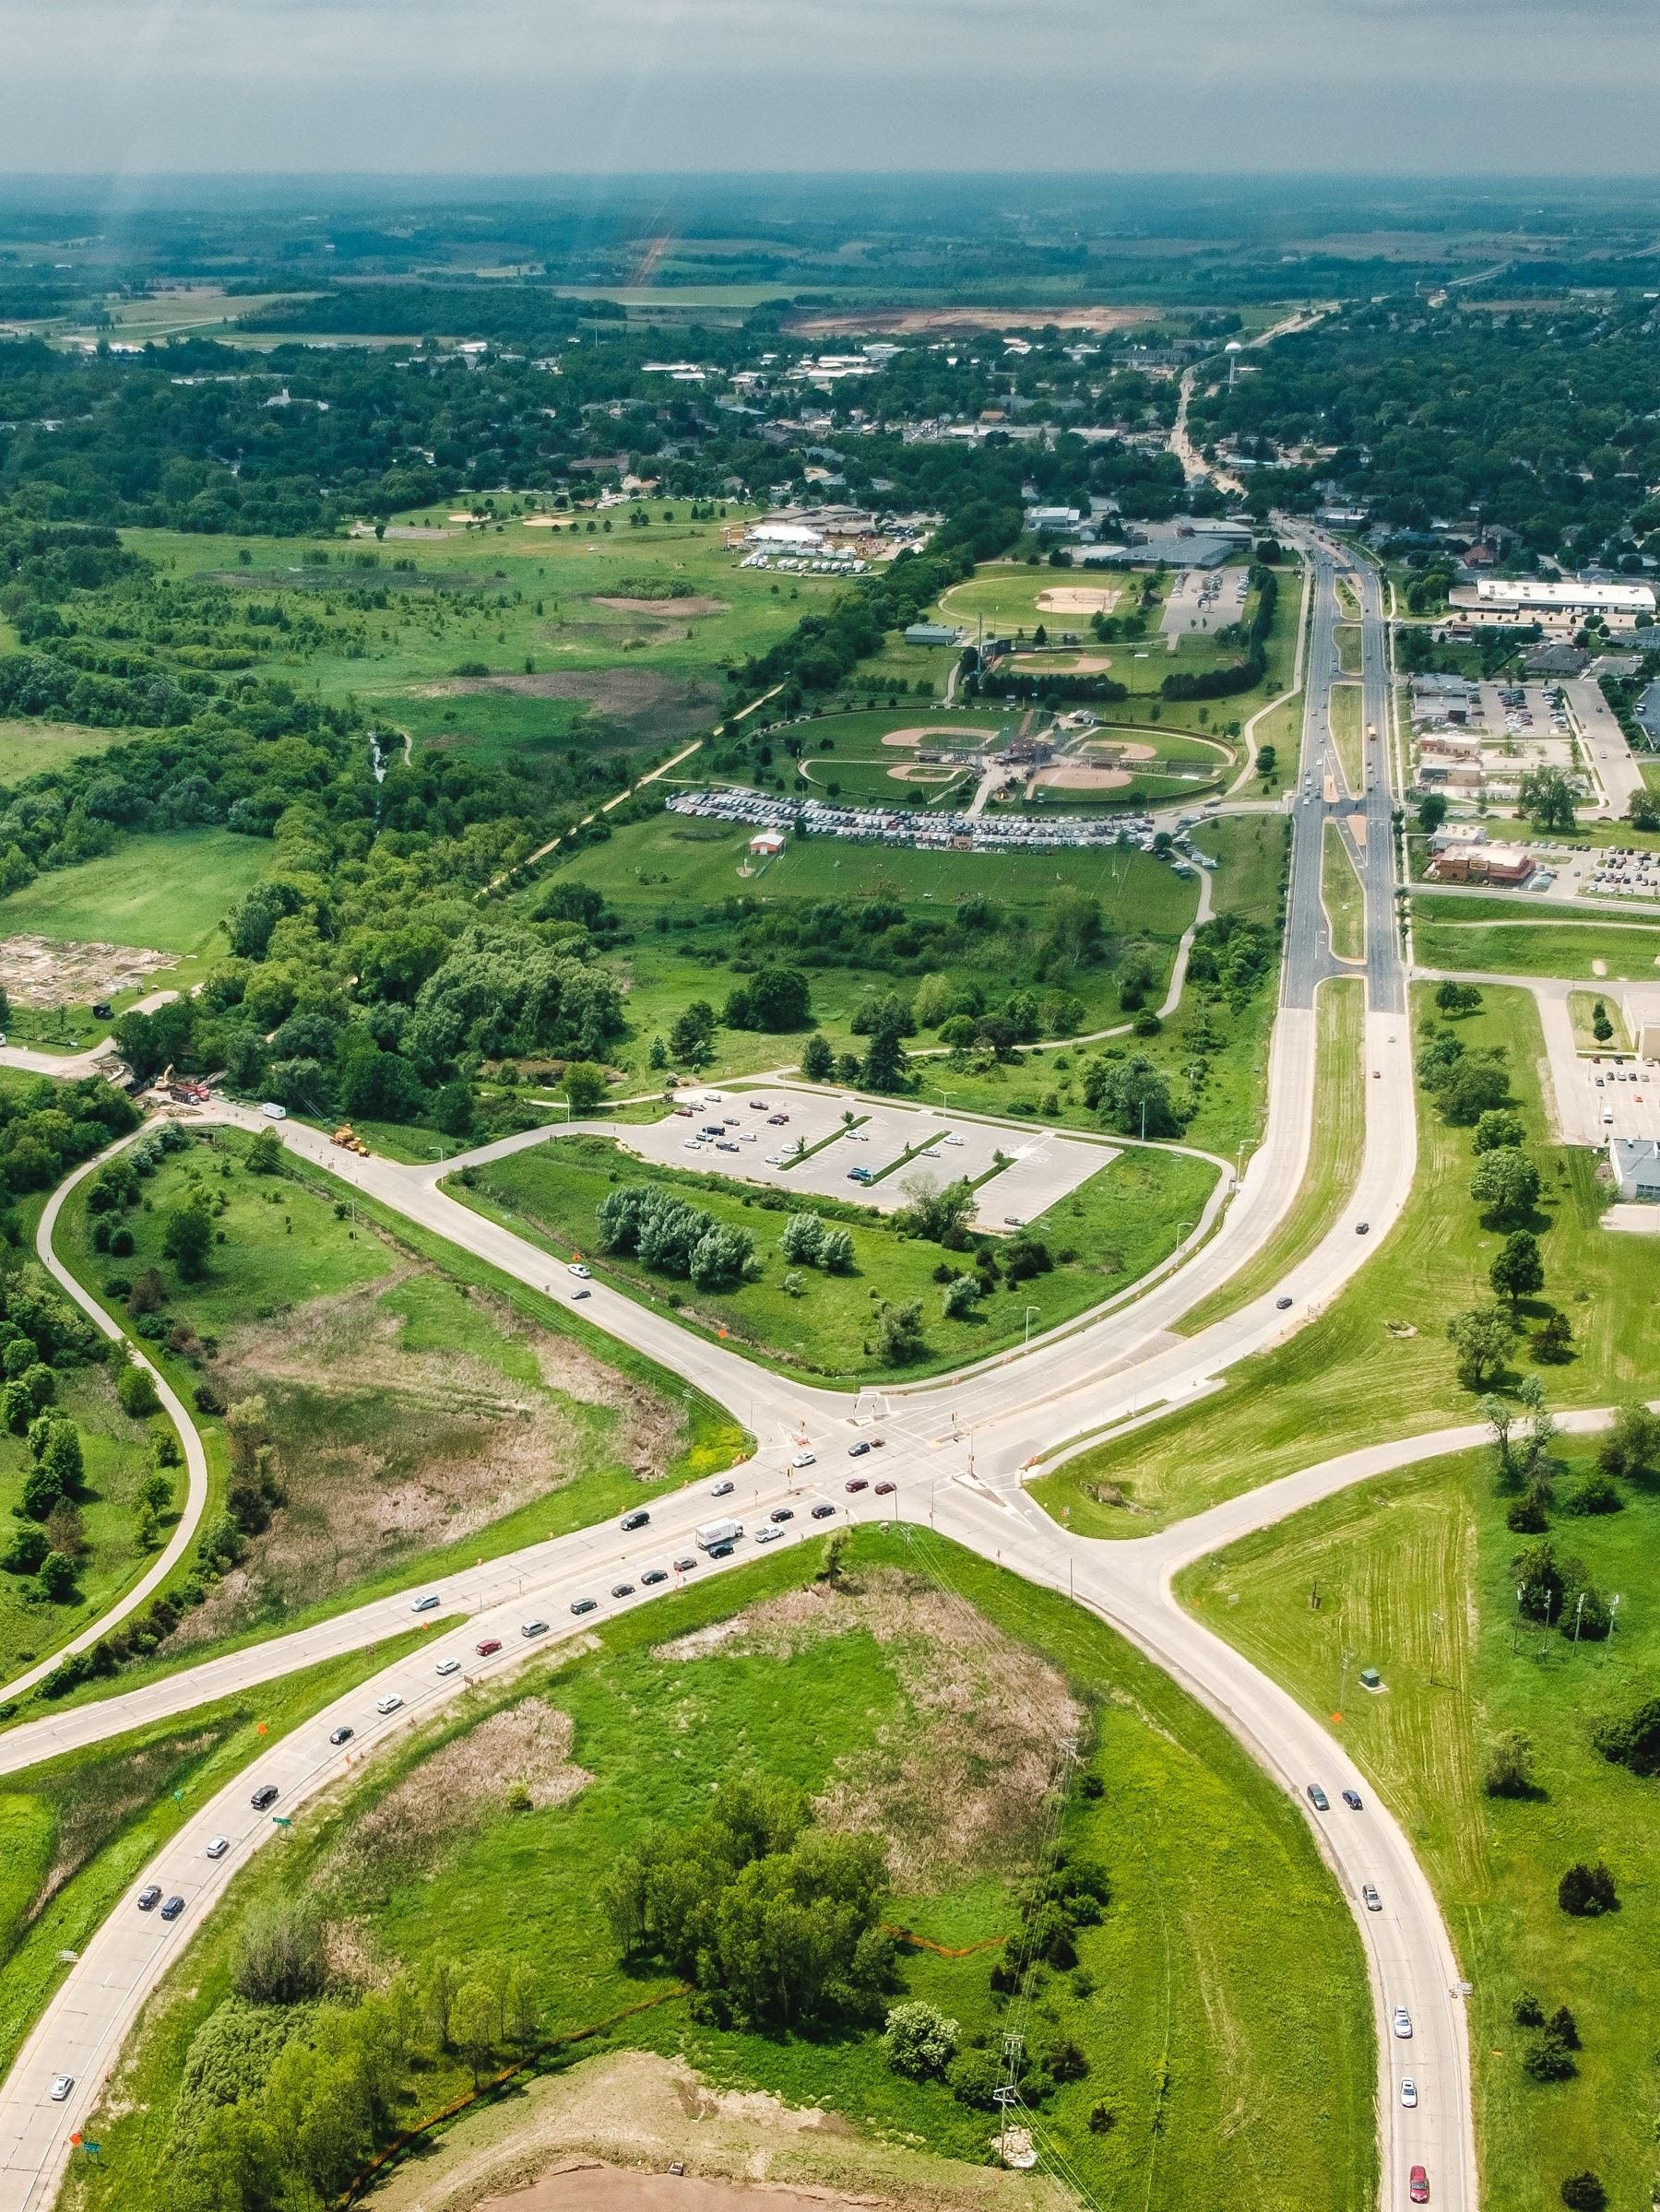 Aerial image of US Hwy 151, Verona Ave, Military Ridge State Trail and the park-n-ride.